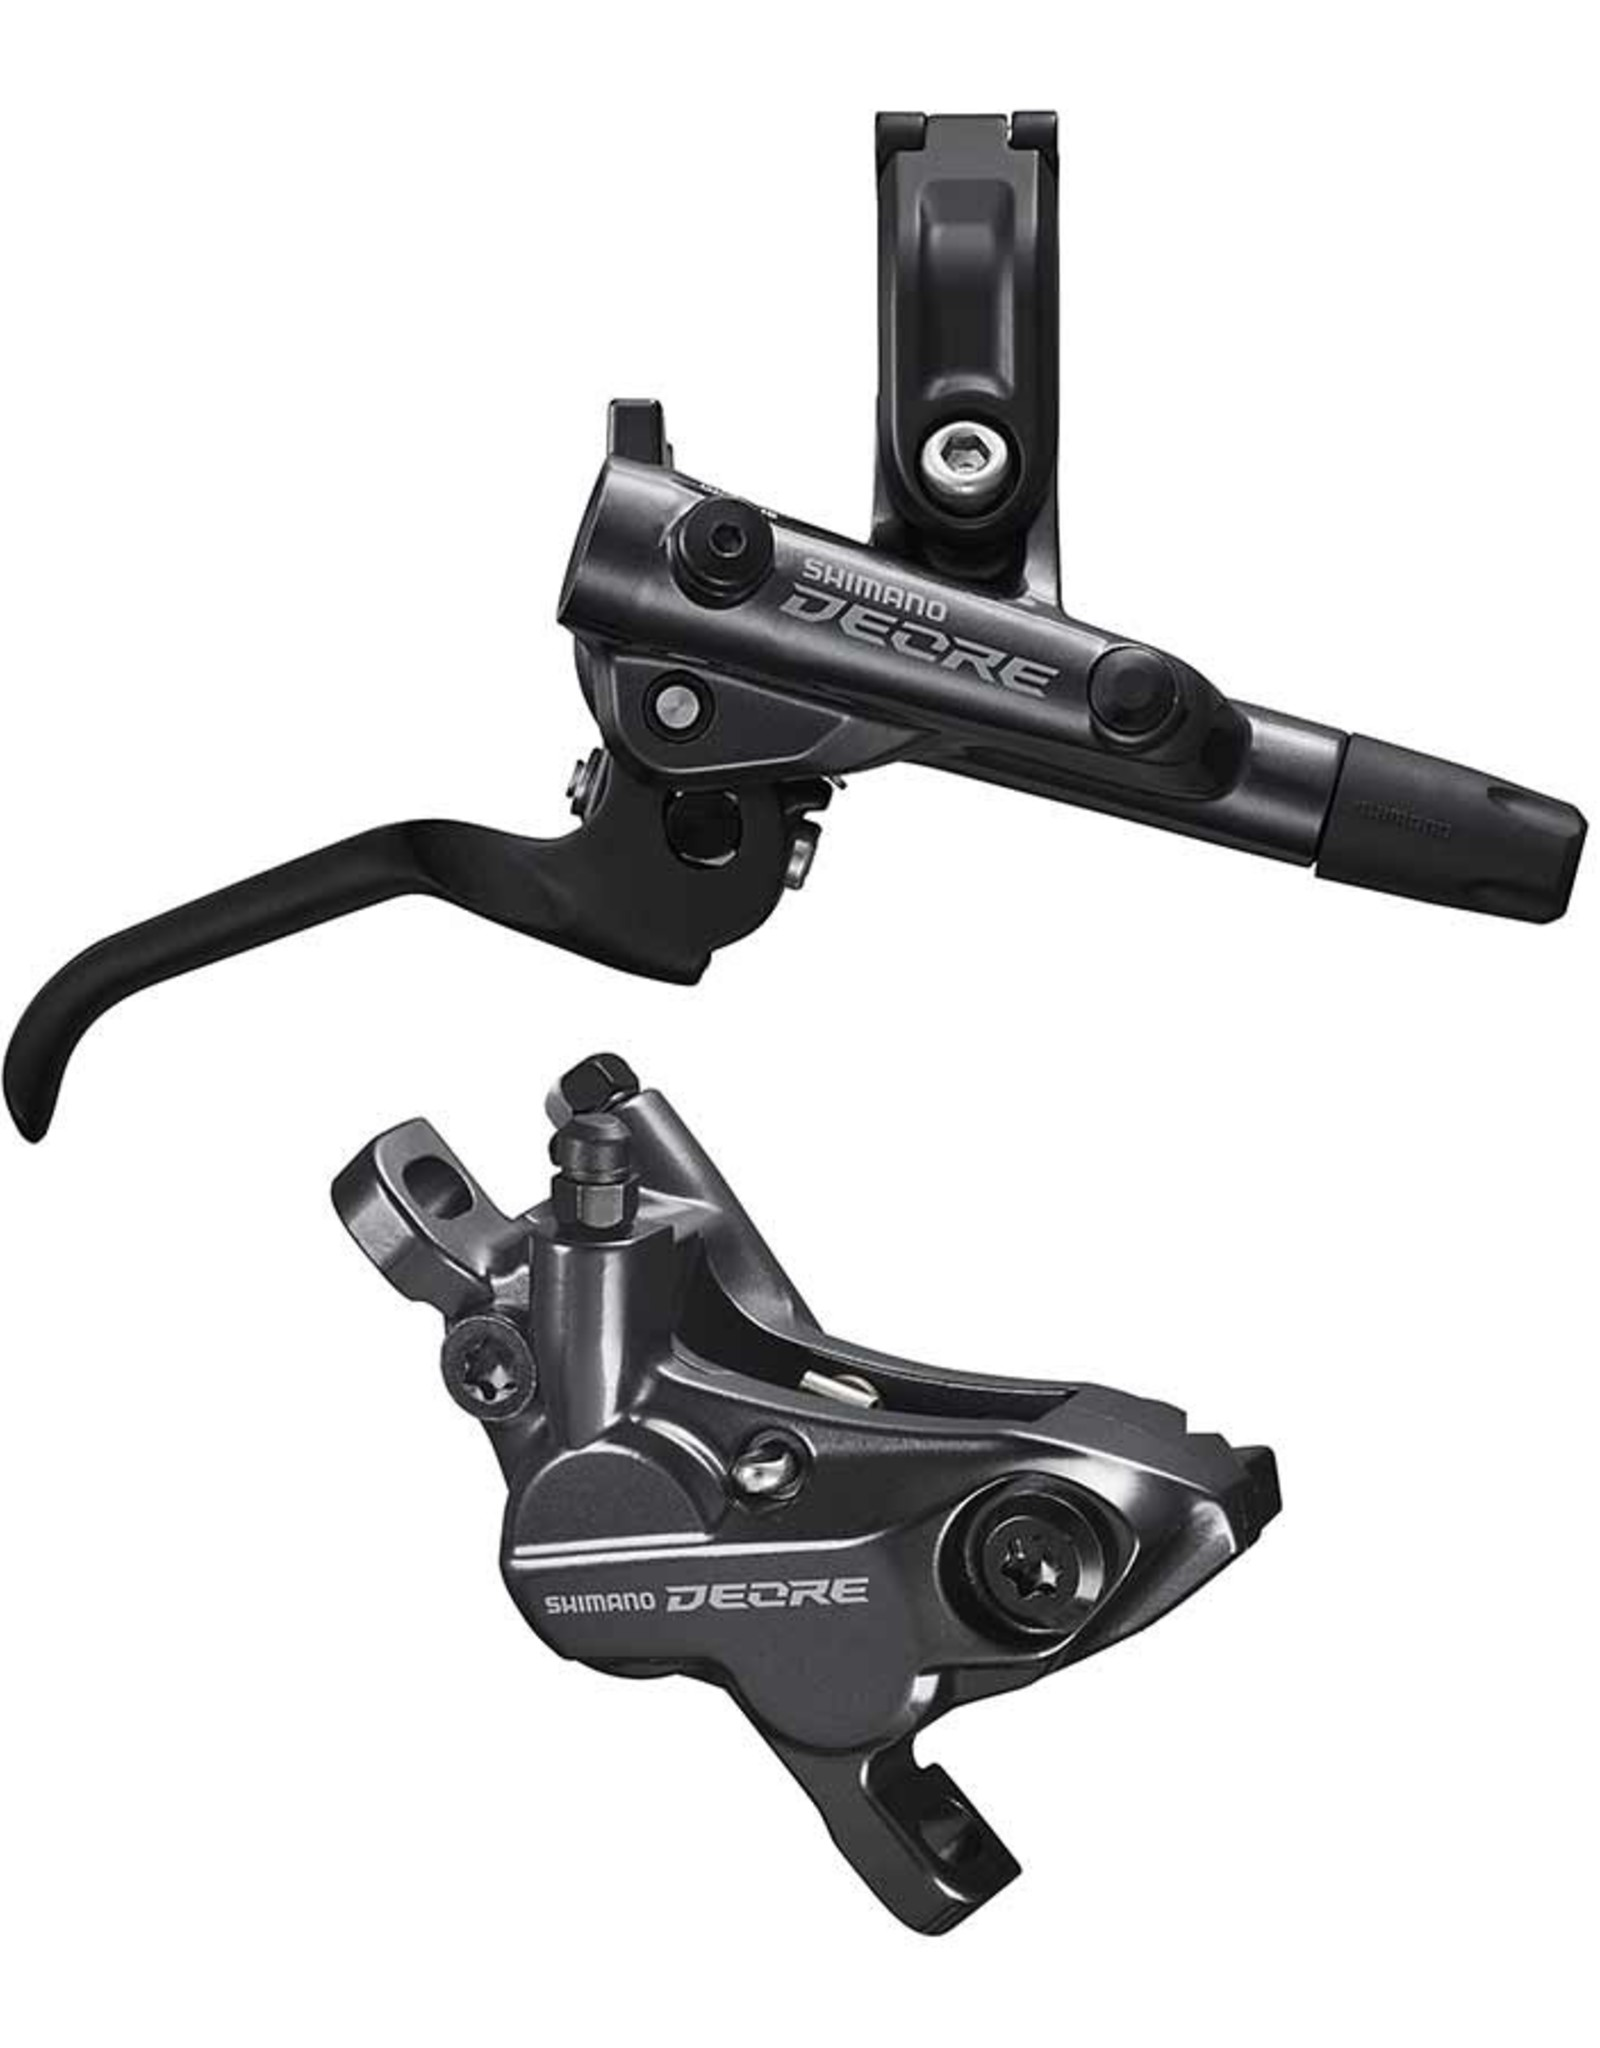 Shimano Shimano, Deore BL-M6100 / BR-M6120, MTB Hydraulic Disc Brake, Rear, Post mount, Disc: Not included, Black